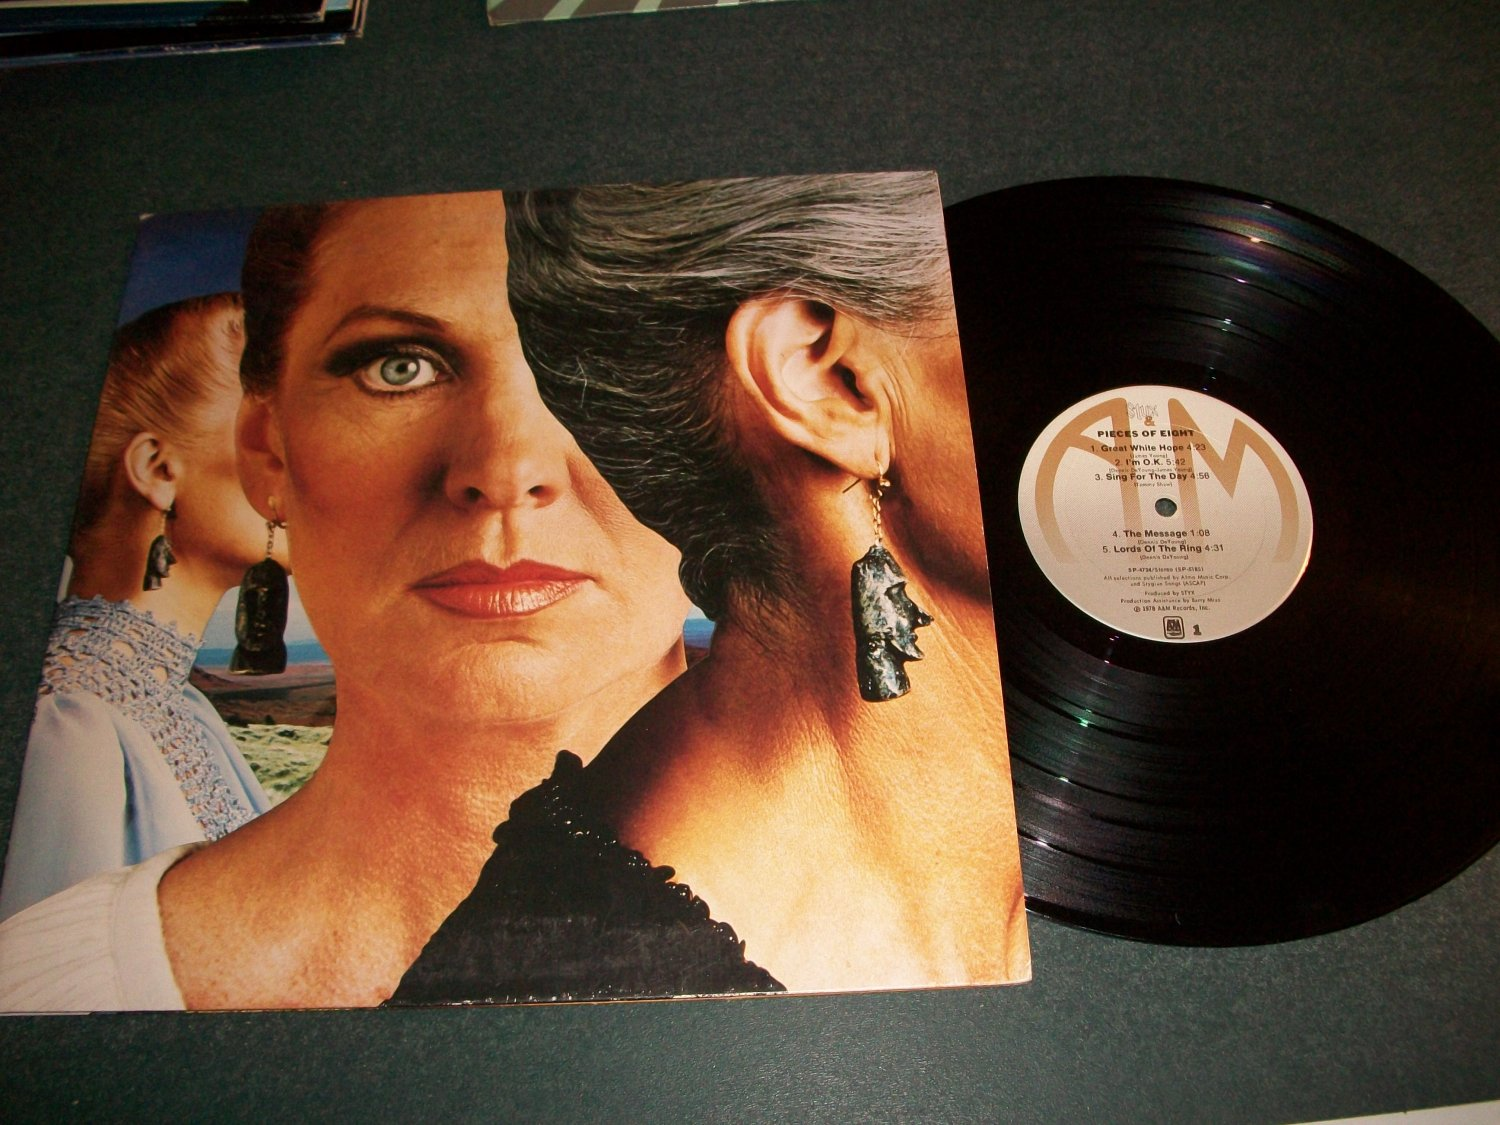 Styx - Pieces Of Eight - Record LP